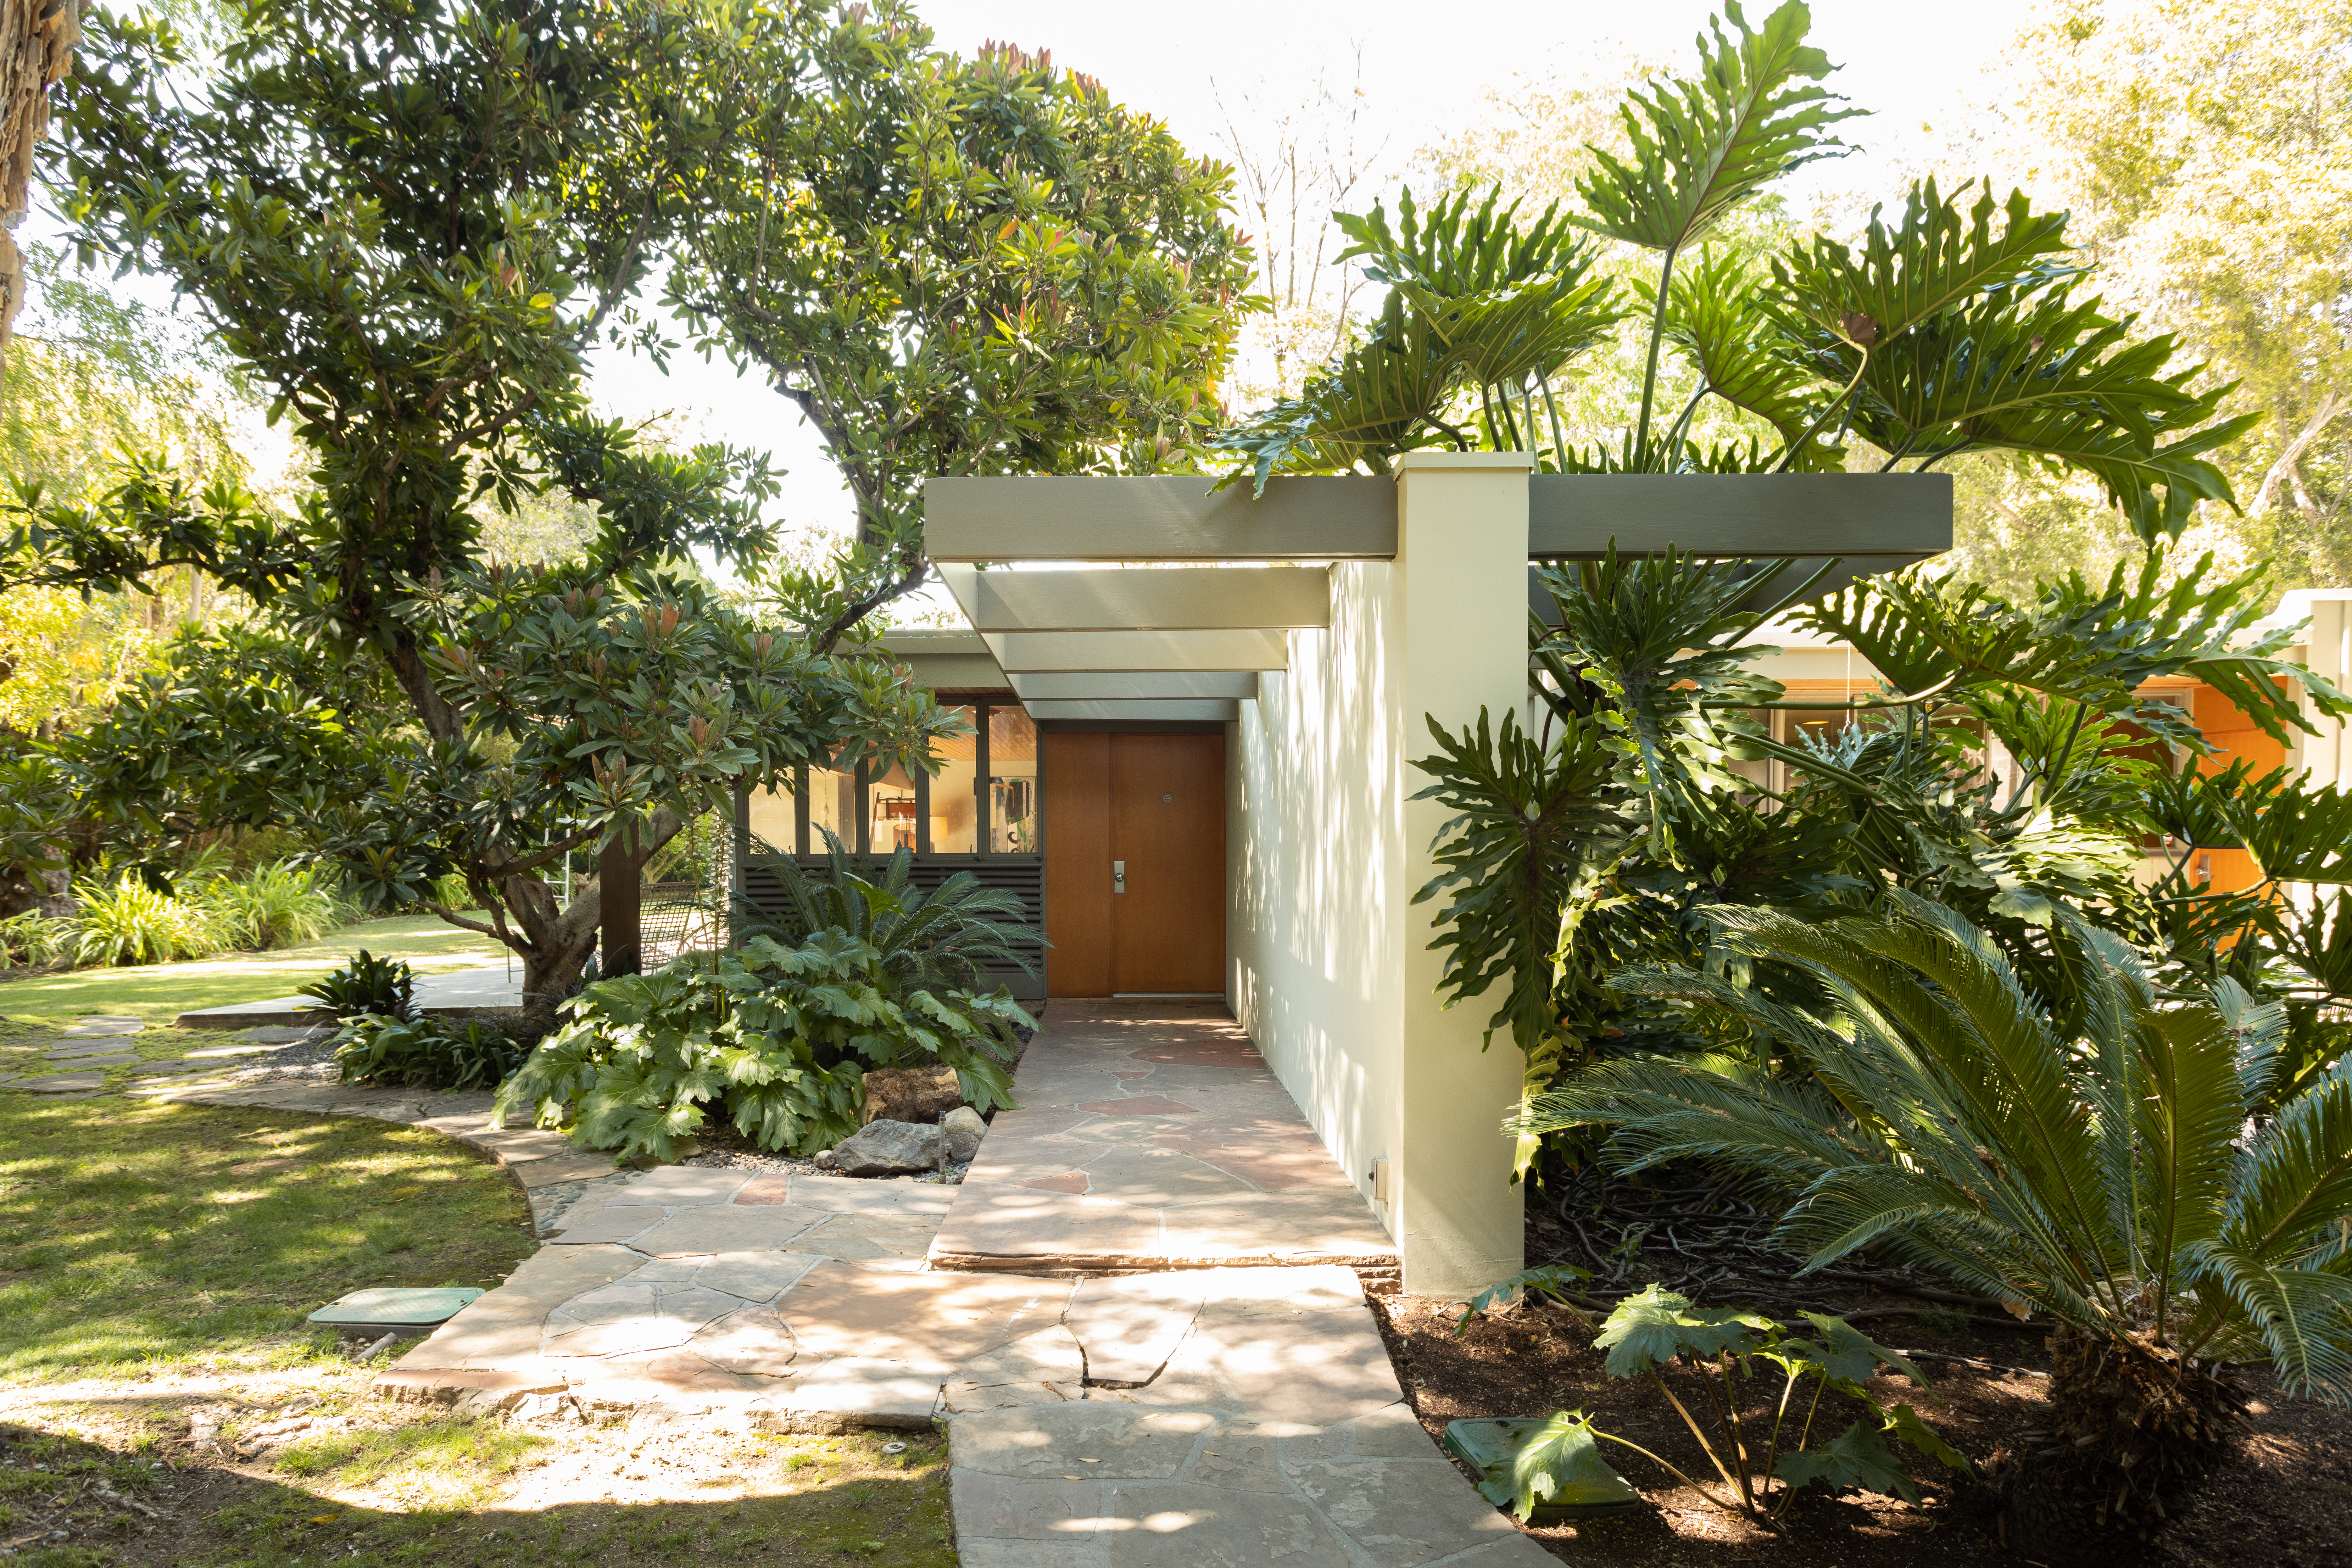 View into a corridor of a modern house, surrounded by trees.